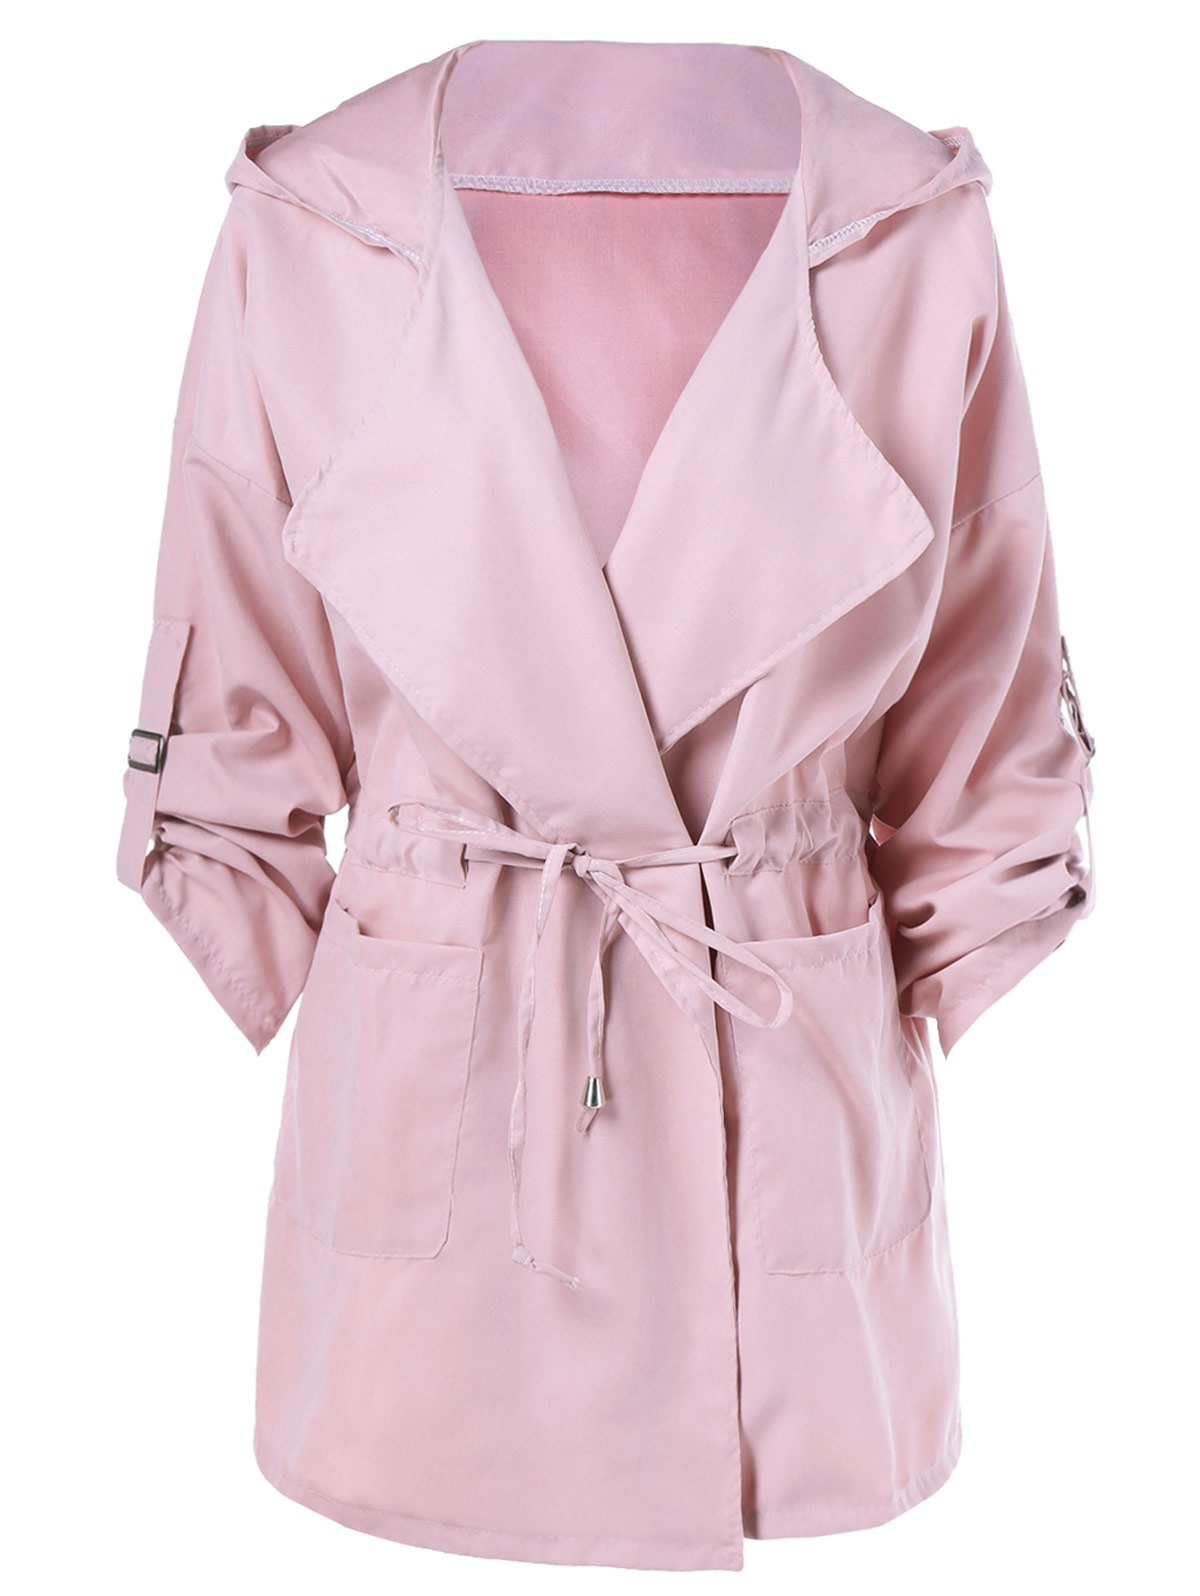 Hooded Drawstring Trench Coat - PINK S